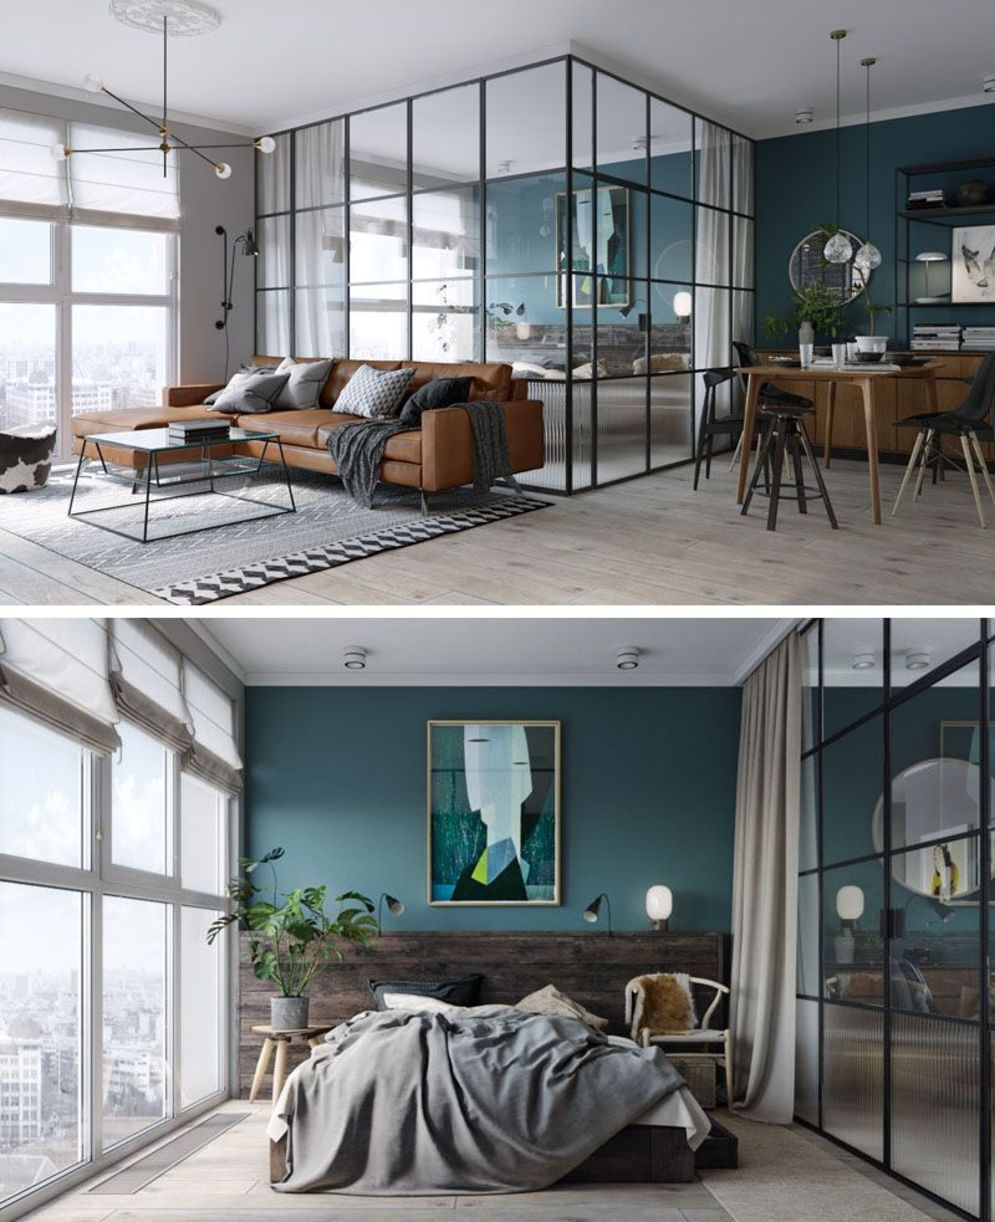 Bright home concepts with modern style of glass partition giving vast interior sense of space Image 17